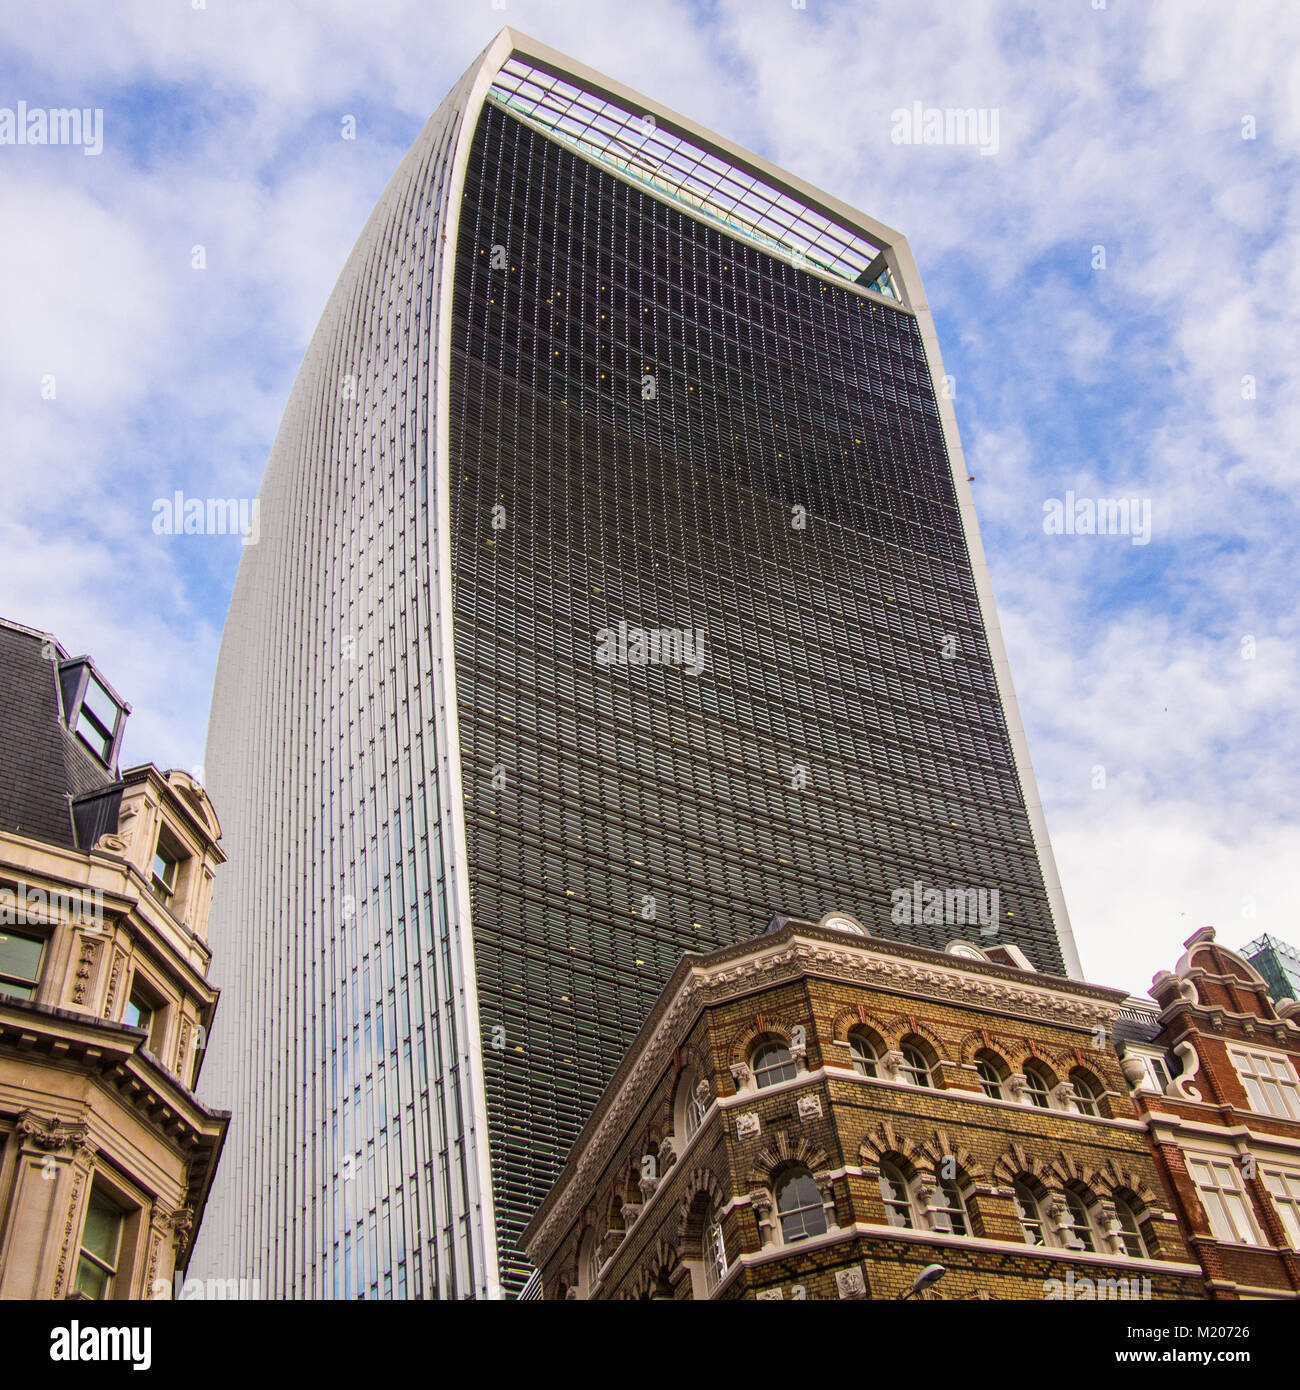 Skyscraper at 20 Fenchurch St London aka 'The Walkie Talkie'. Home to the 'Sky garden' - Stock Image